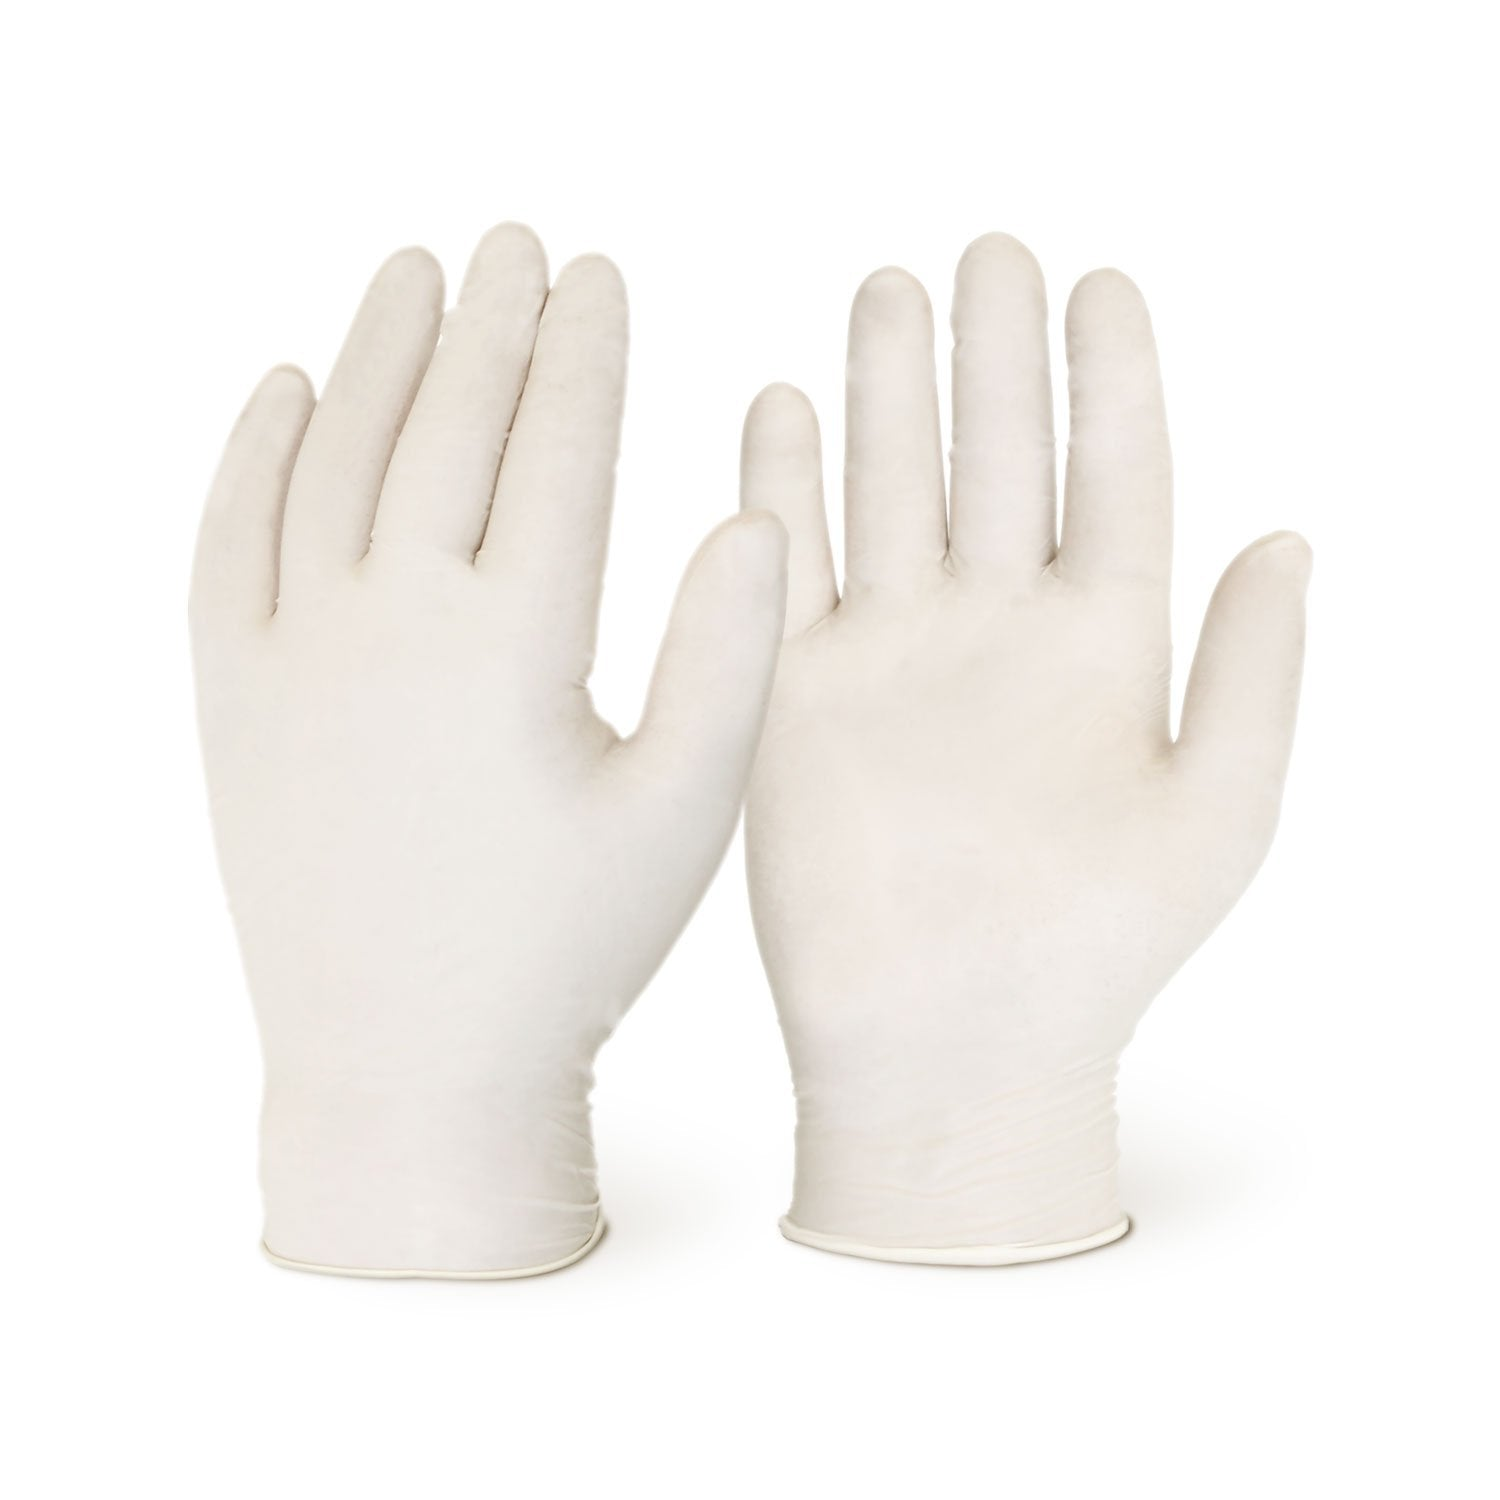 5 Mil Latex Exam Grade (1,000 Gloves/Case)